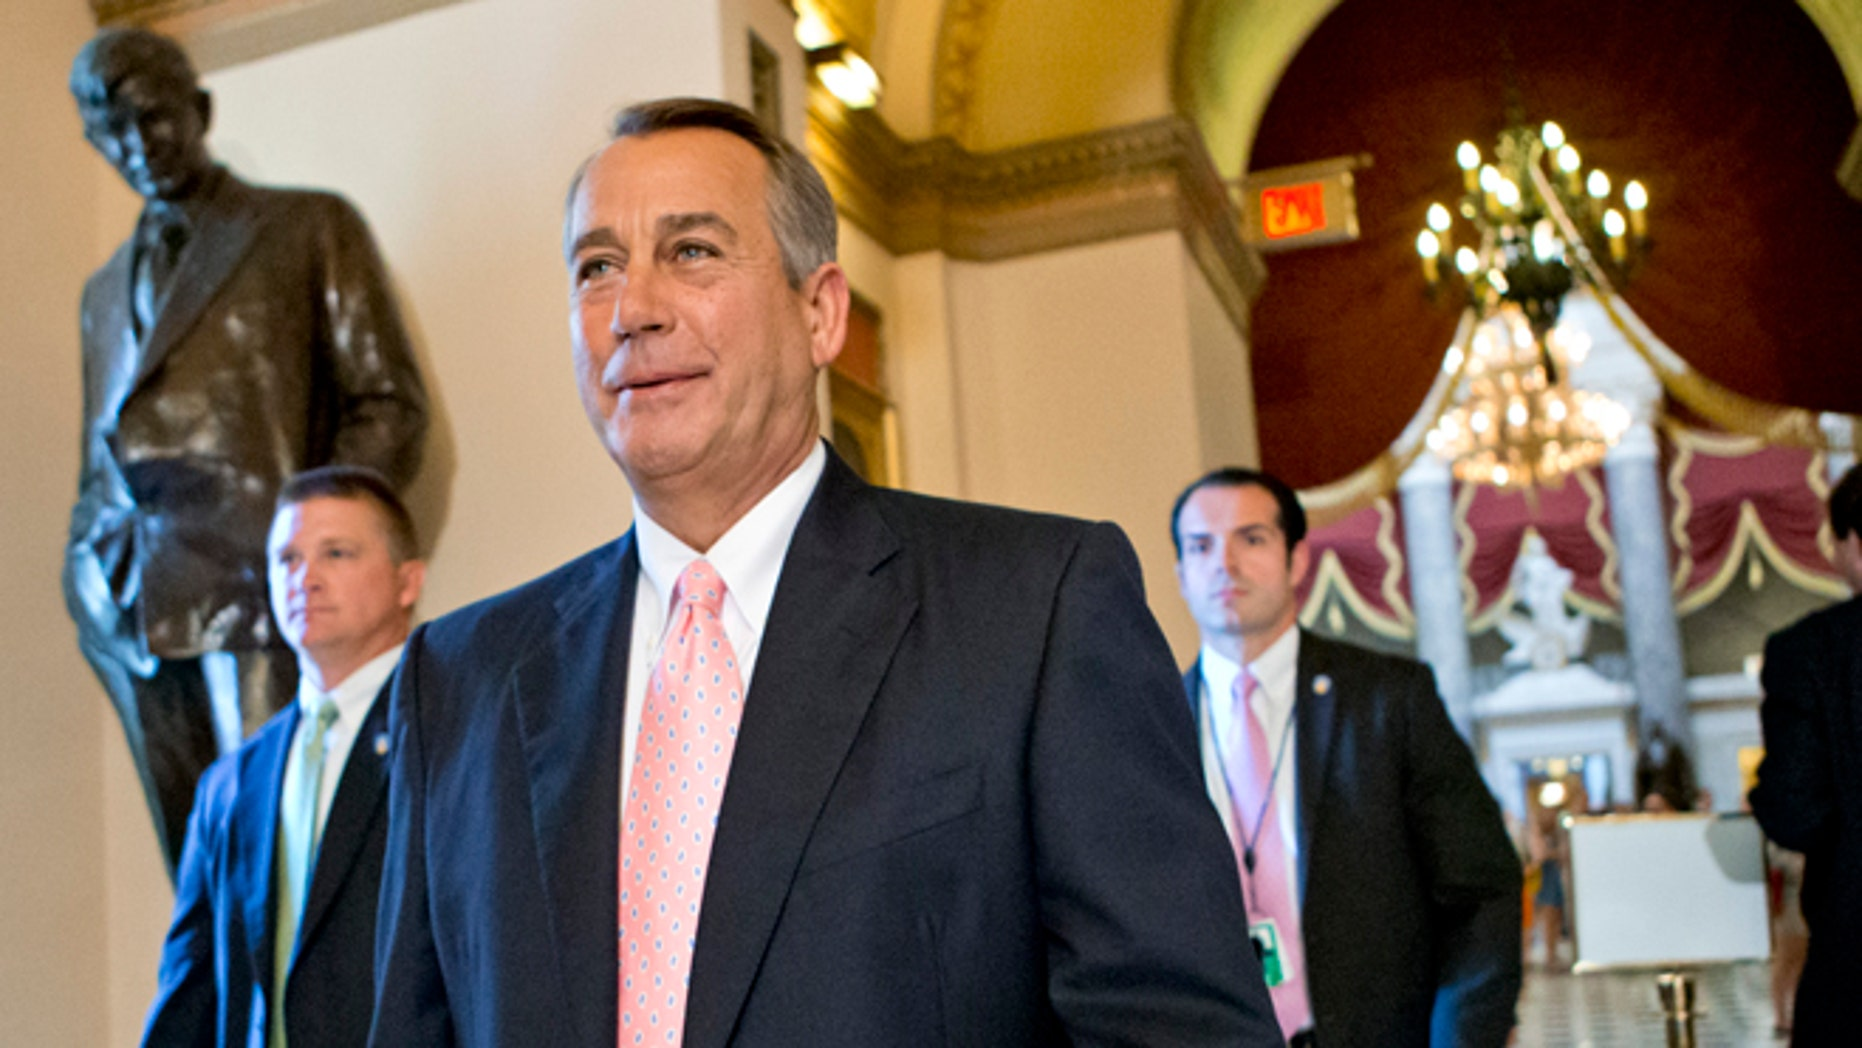 FILE: July 19, 2013: House Speaker John Boehner walks to the chamber floor on Capitol Hill, in Washington, D.C.